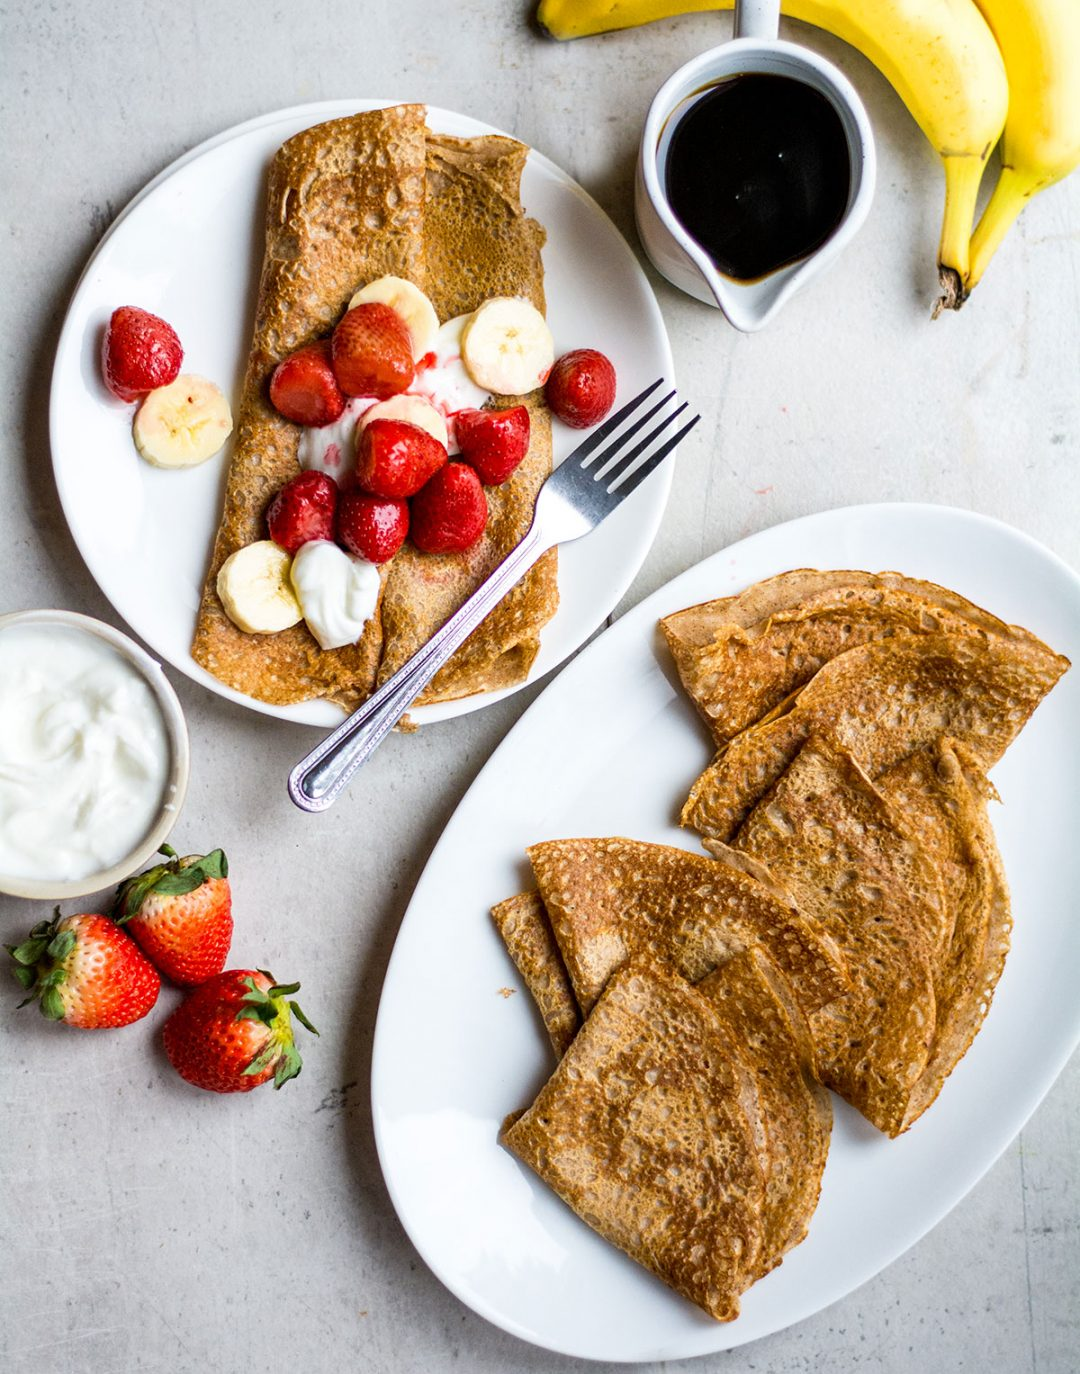 crepes on white background with strawberries and bananas